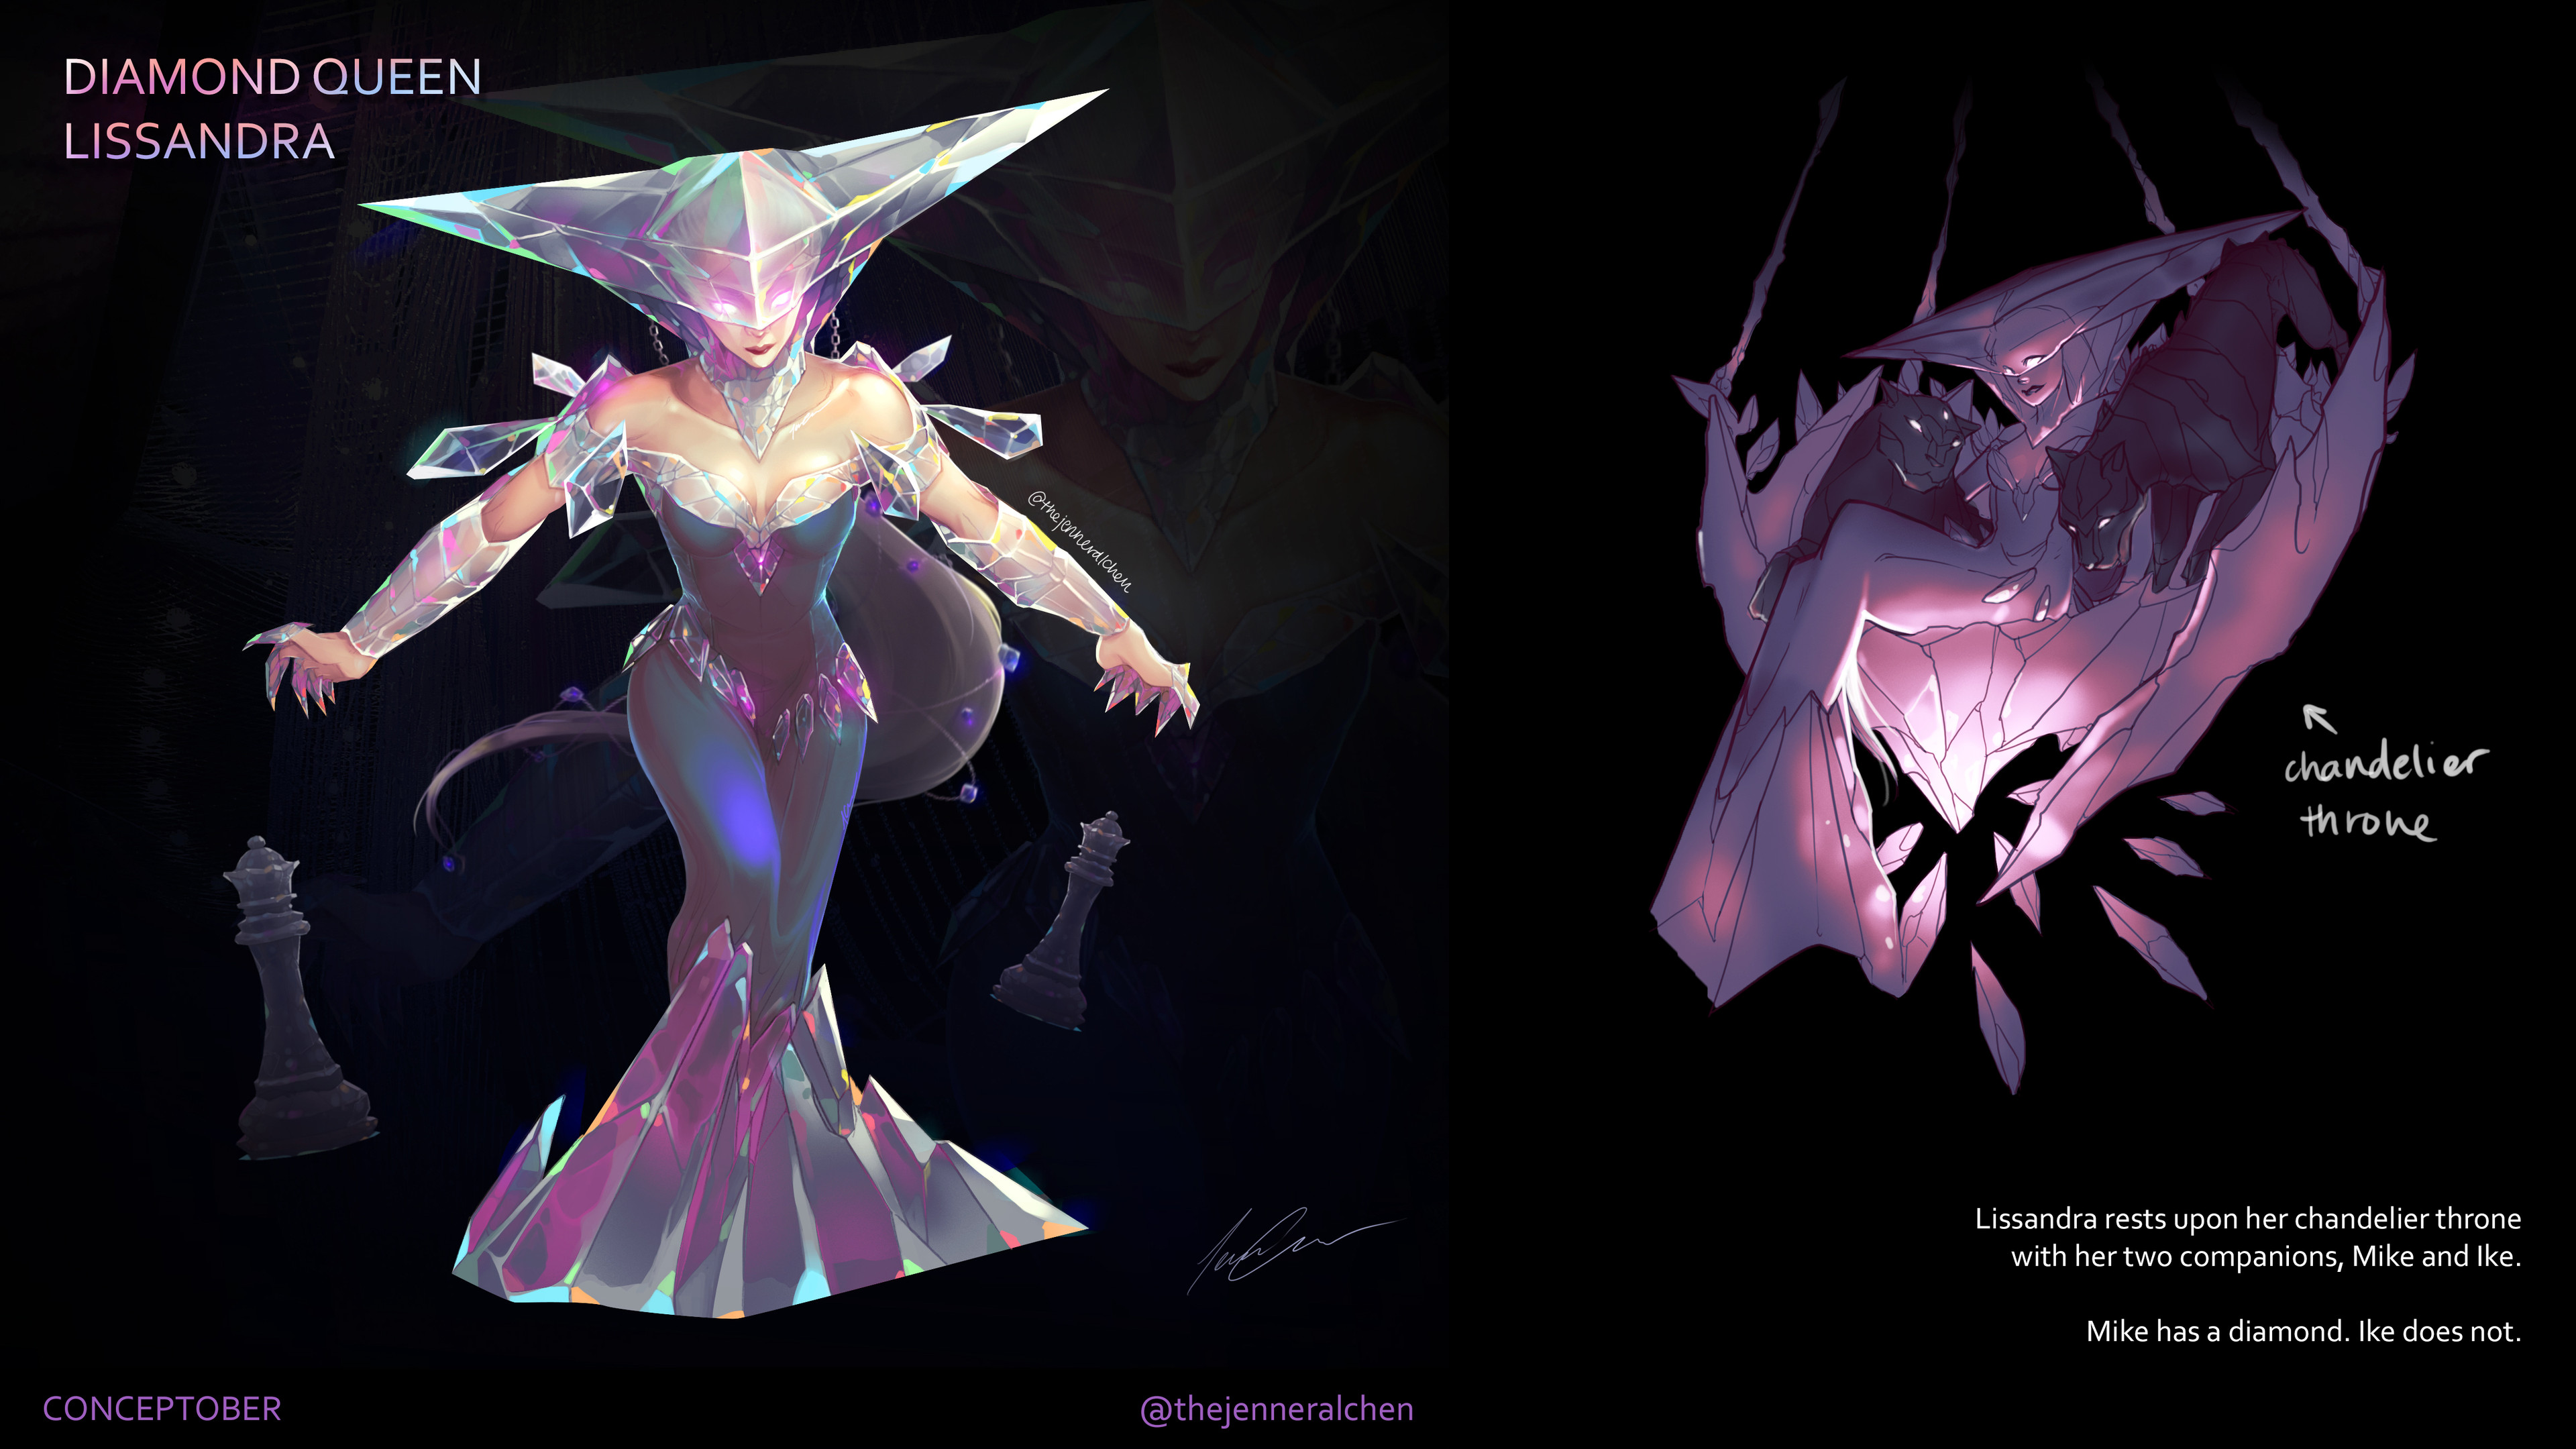 Concept Page - The initial idea for a Diamond-based skin came from sitting in the Chandelier at Cosmopolitan in Las Vegas.